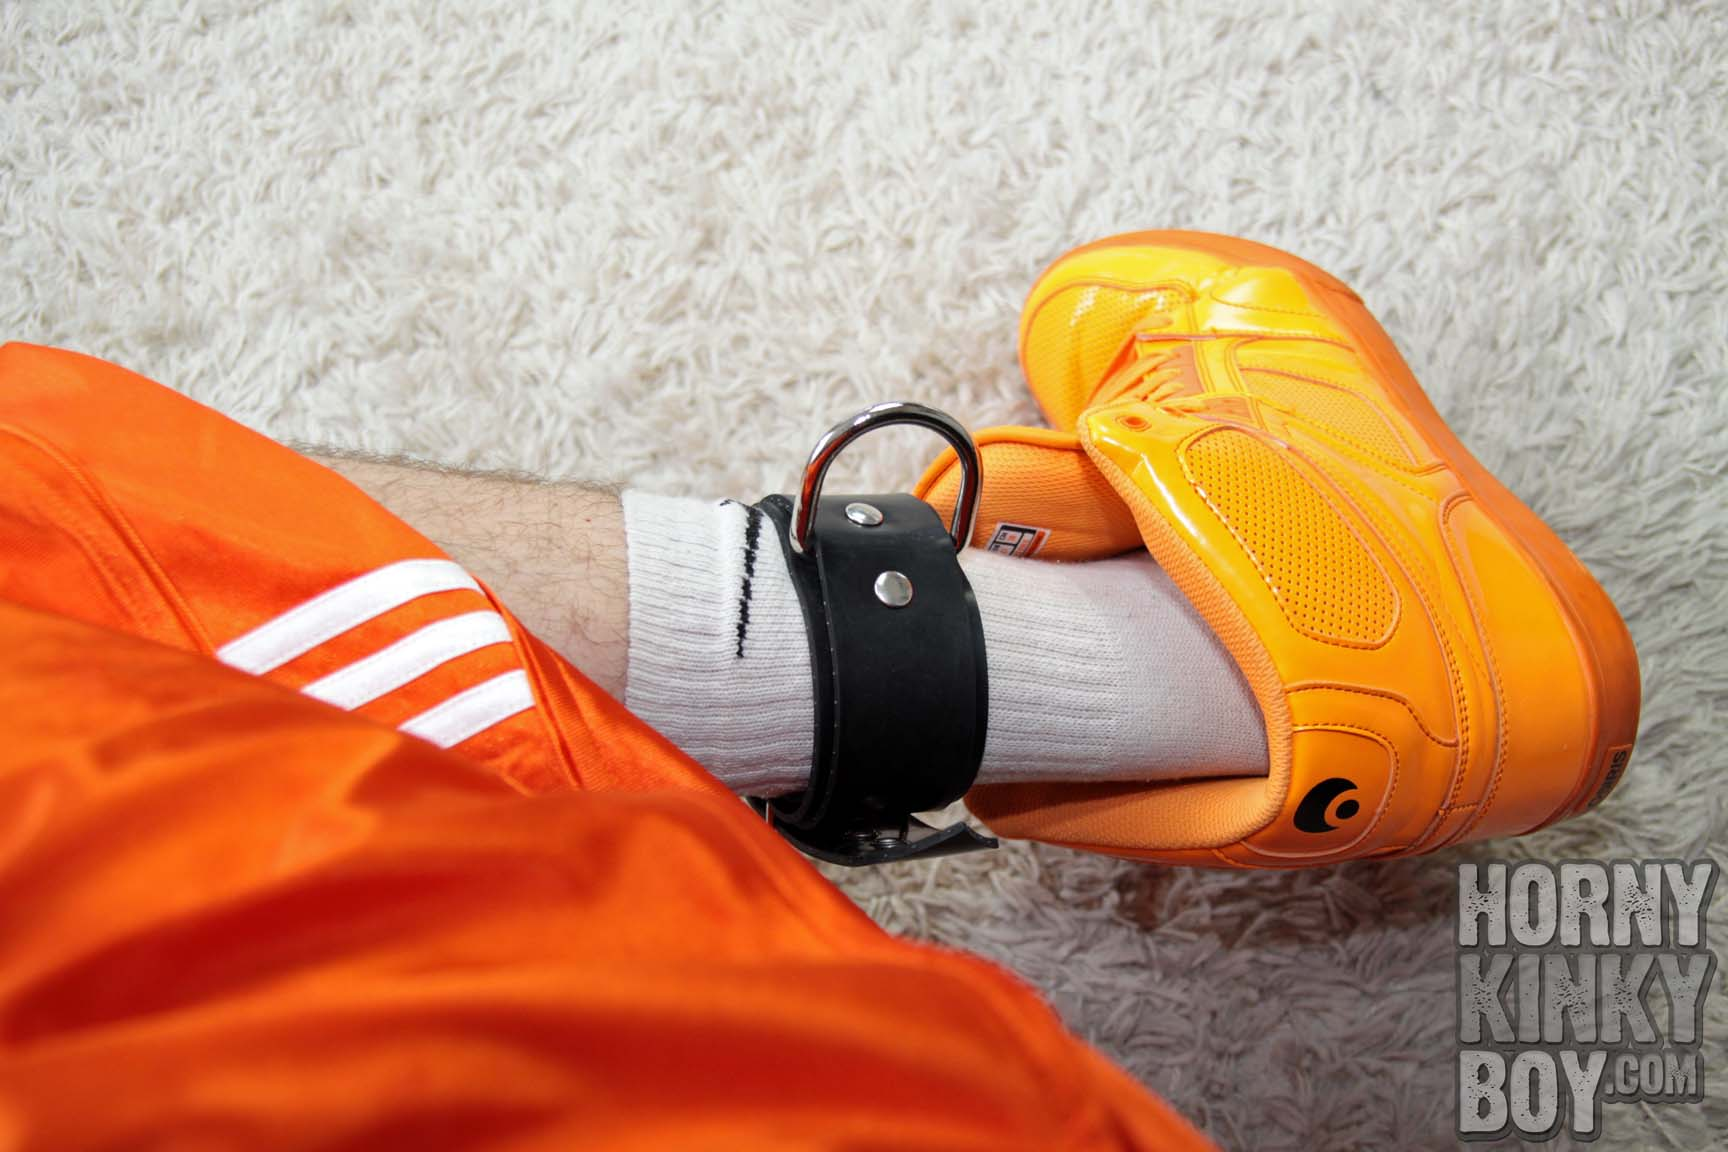 Orange Sneaks, White Socks, Feet, And Rubber Foot Restraints